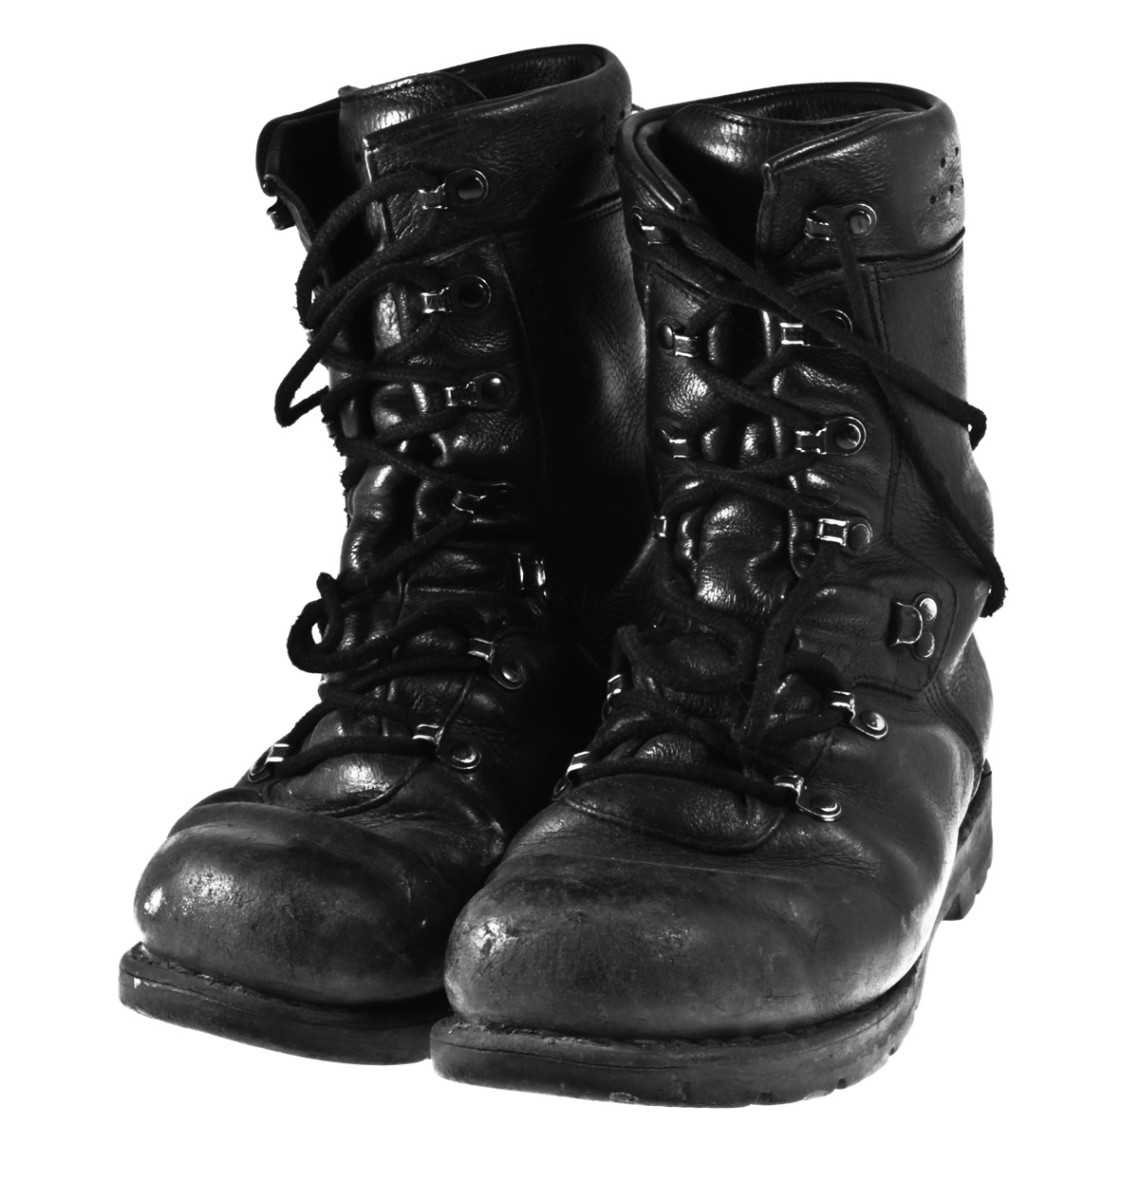 Just How Long Do Work Boots Really Last?